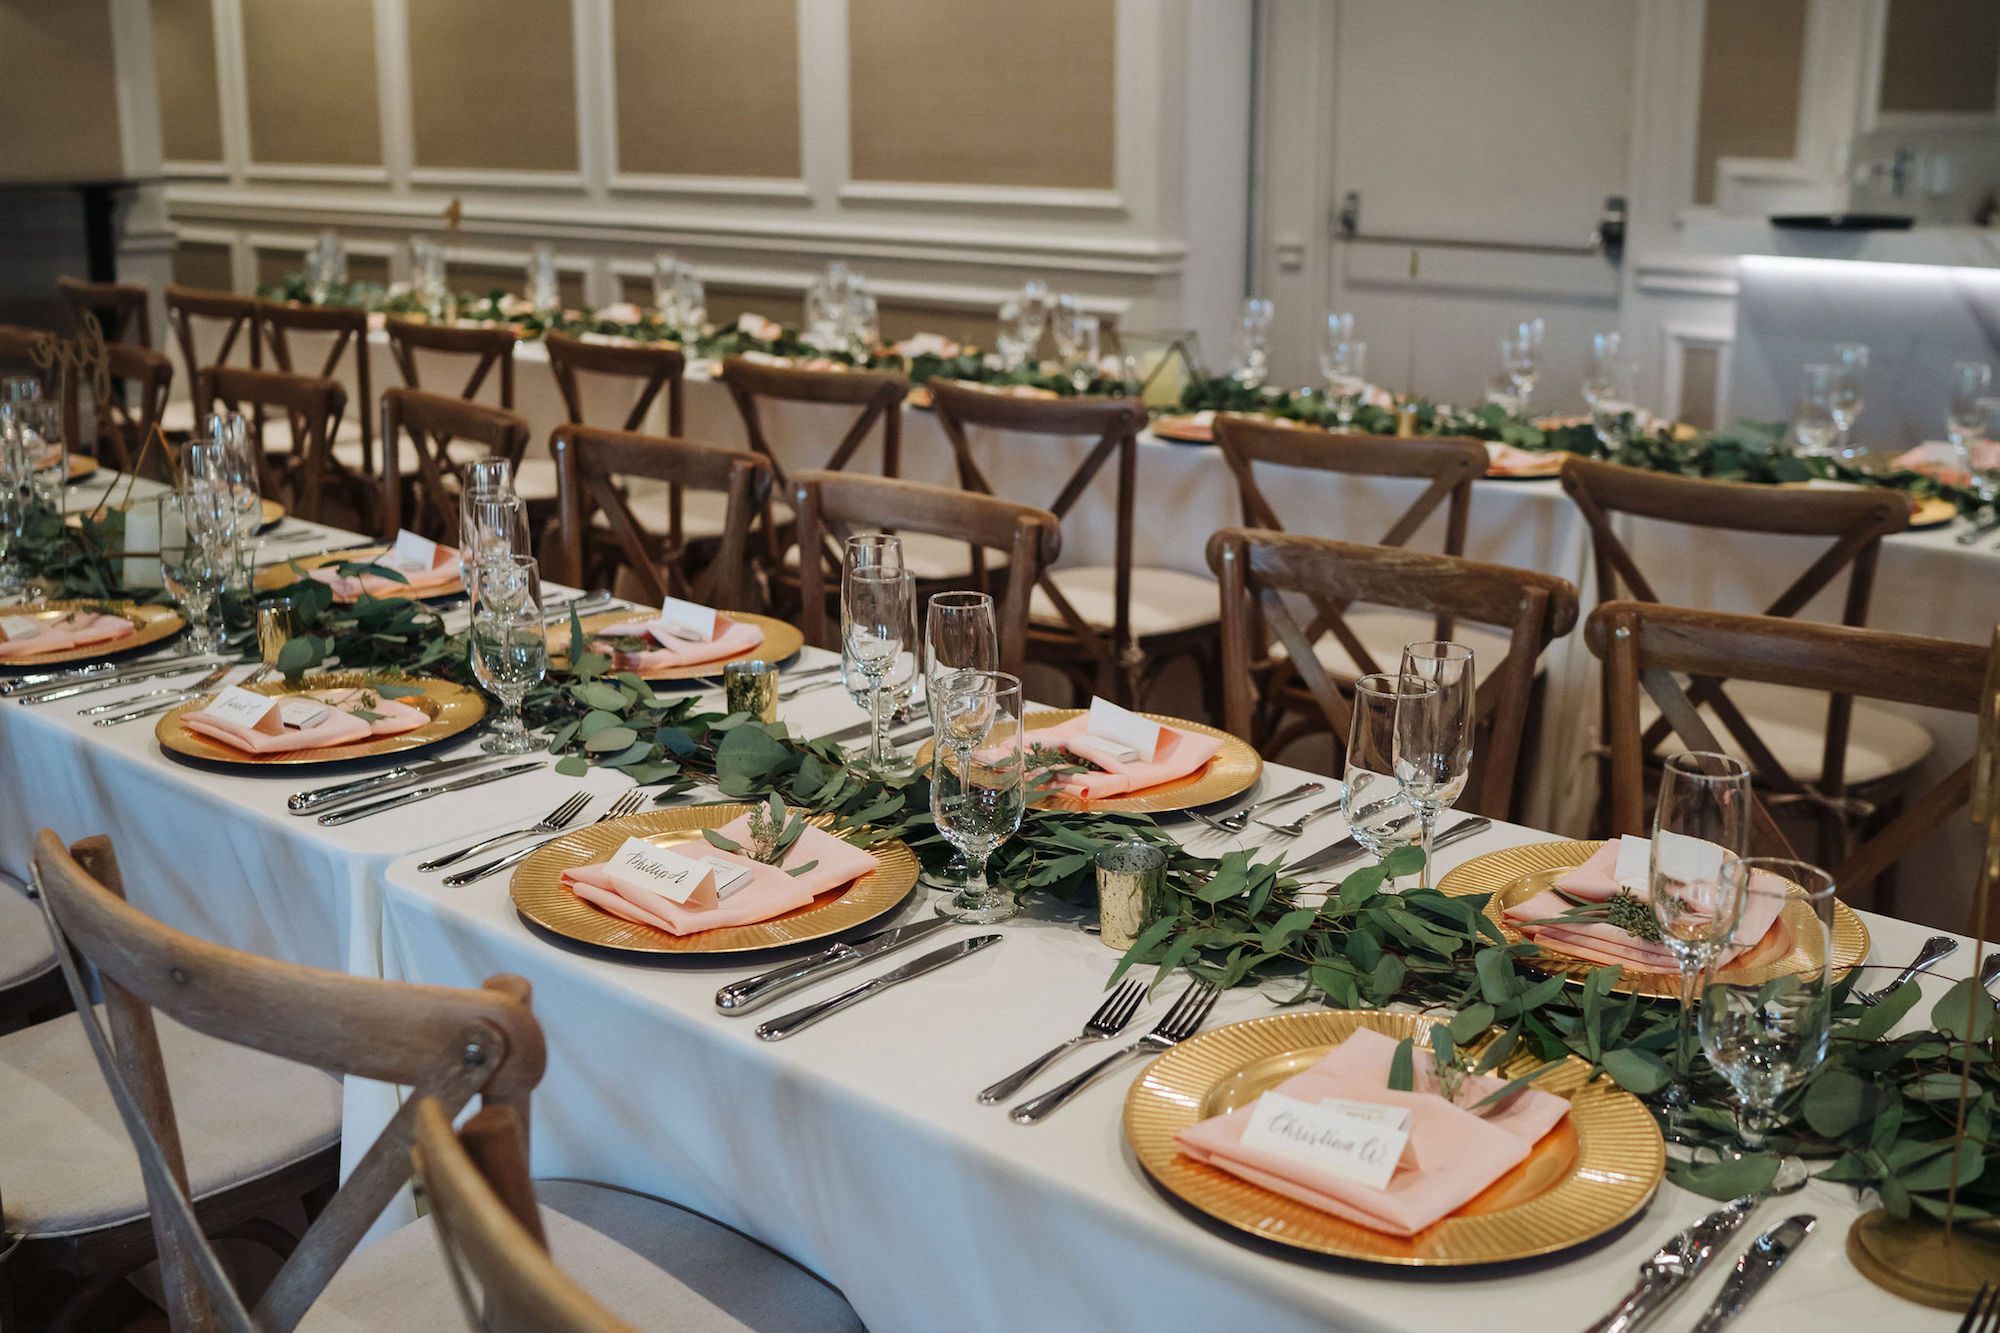 St. Petersburg Florida Wedding Venue   Red Mesa Events   Reception Long Banquet Feasting Tables   Wood Cross Back French Country Chairs   Greenery Garland Centerpiece with Gold Chargers and Blush Napkins